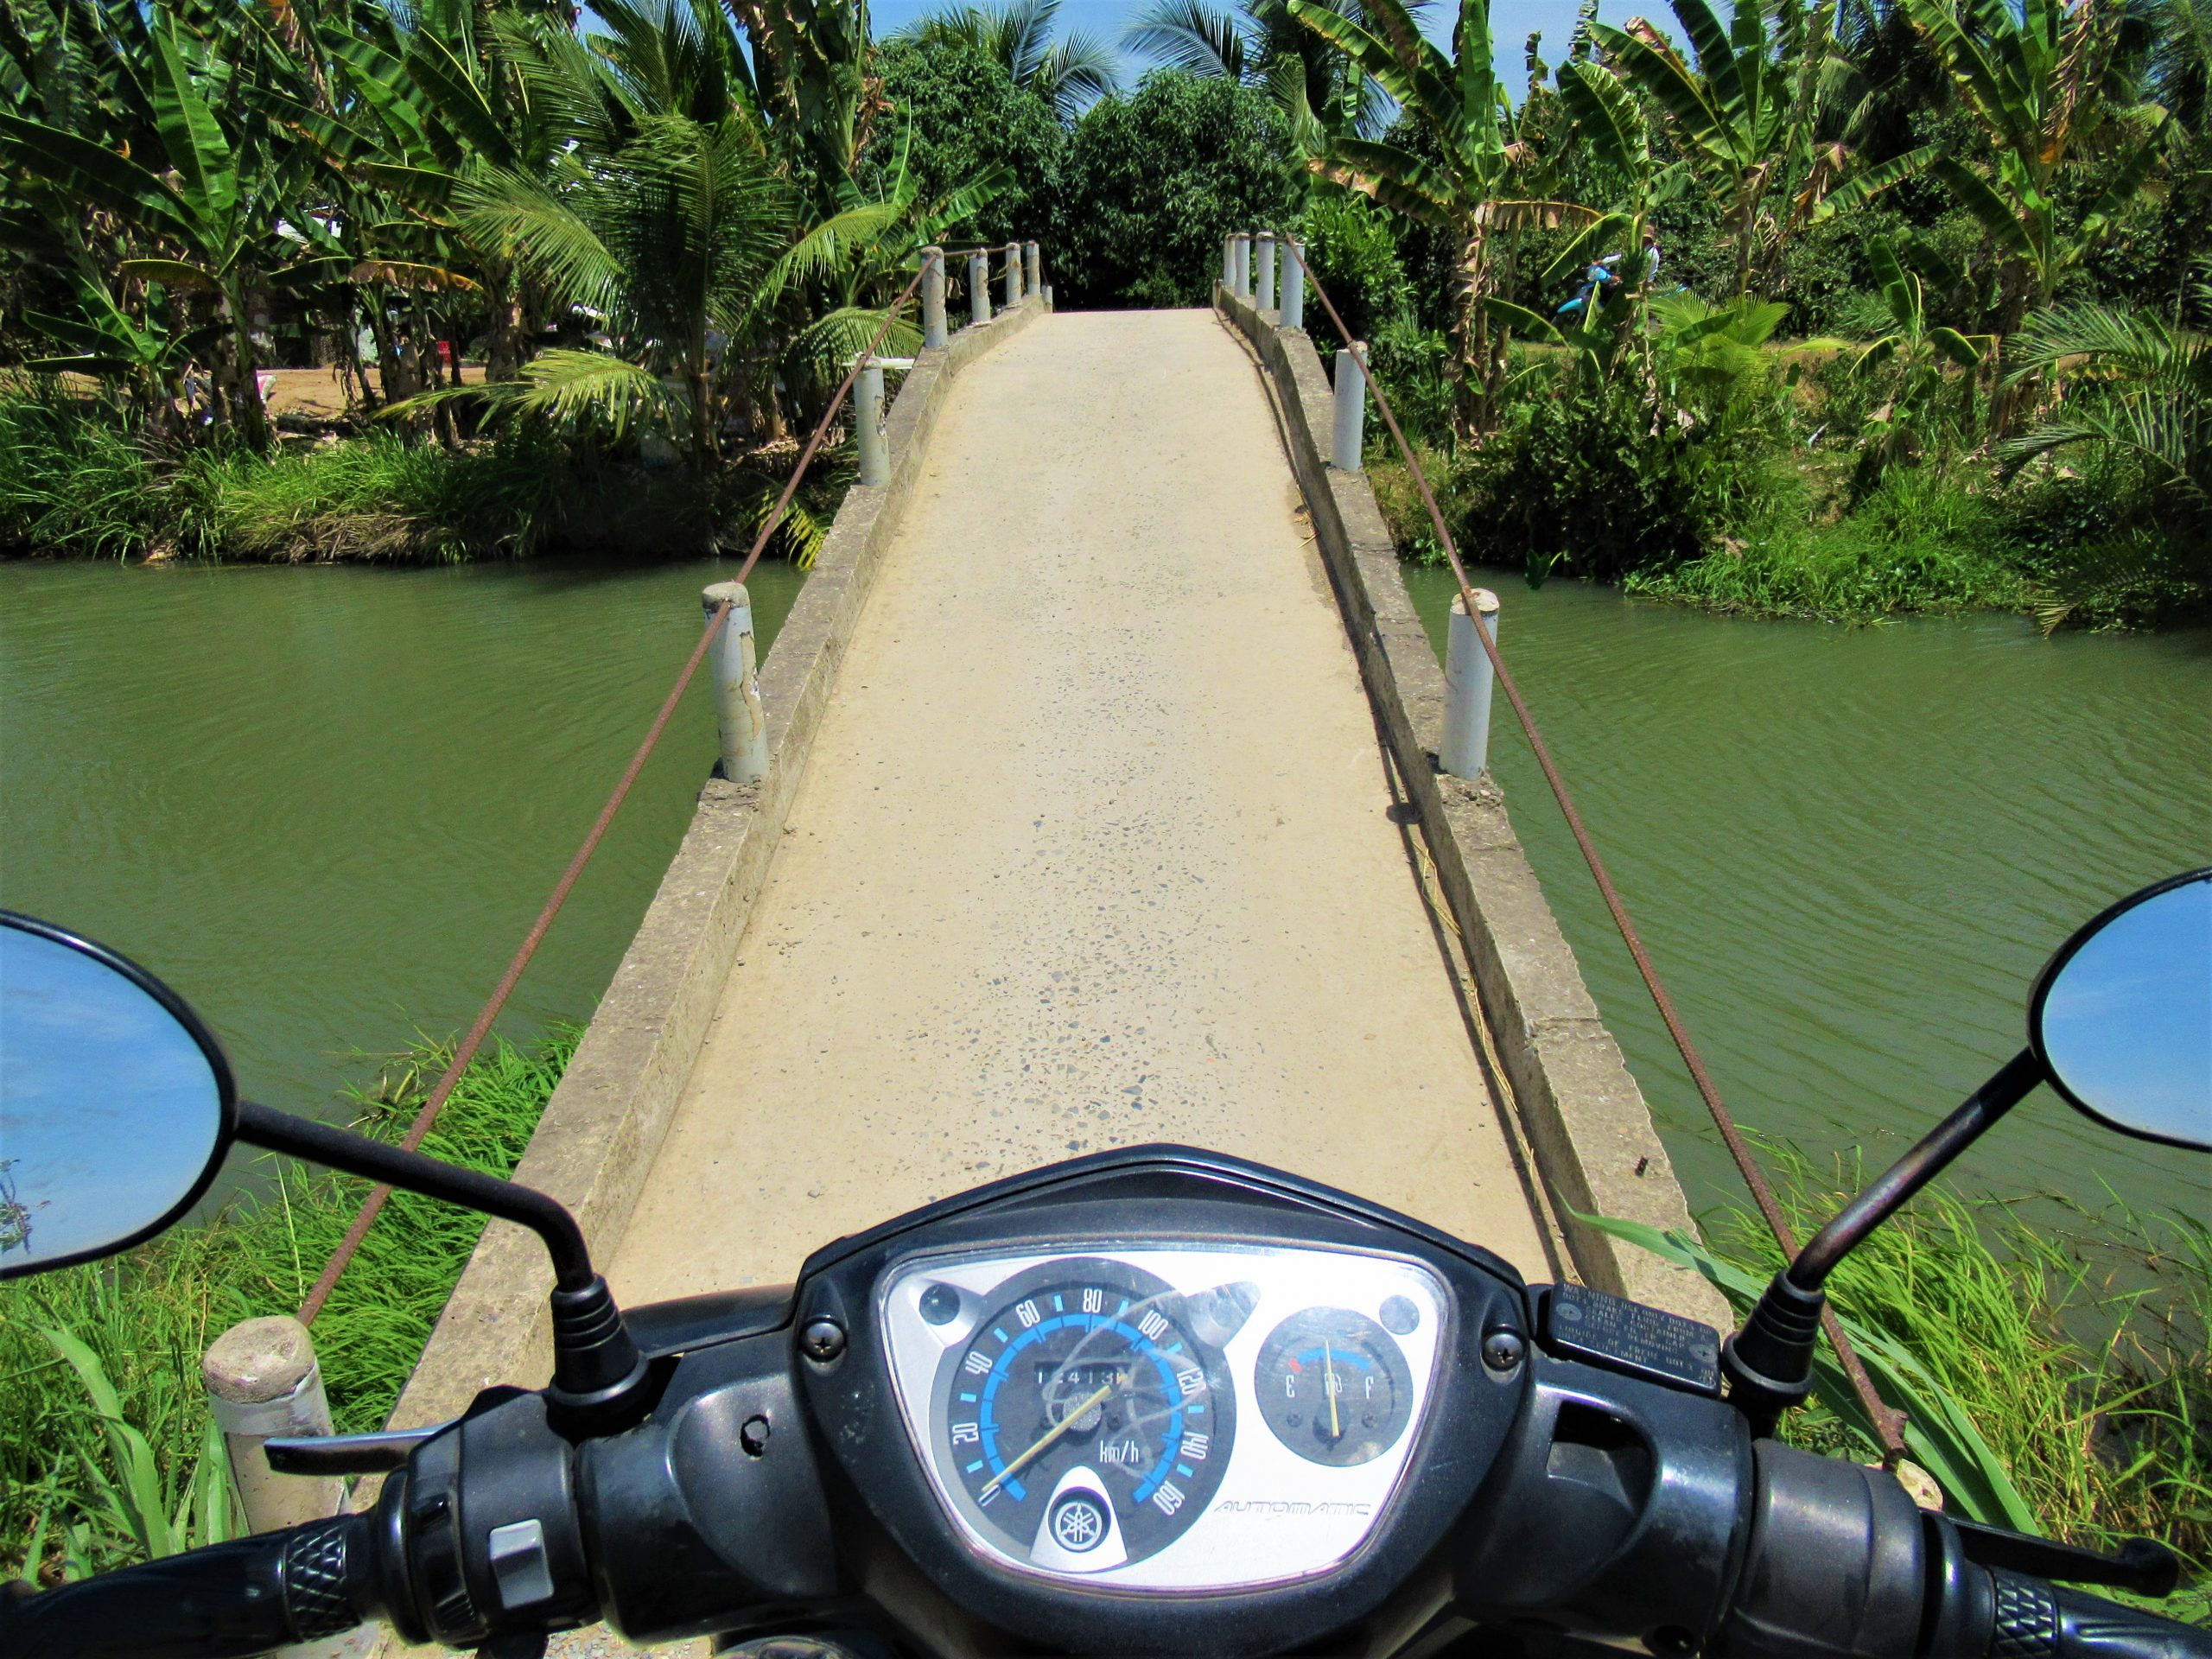 Crossing a canal on a narrow concrete bridge on the Temple-Hopping Loop, Mekong Delta